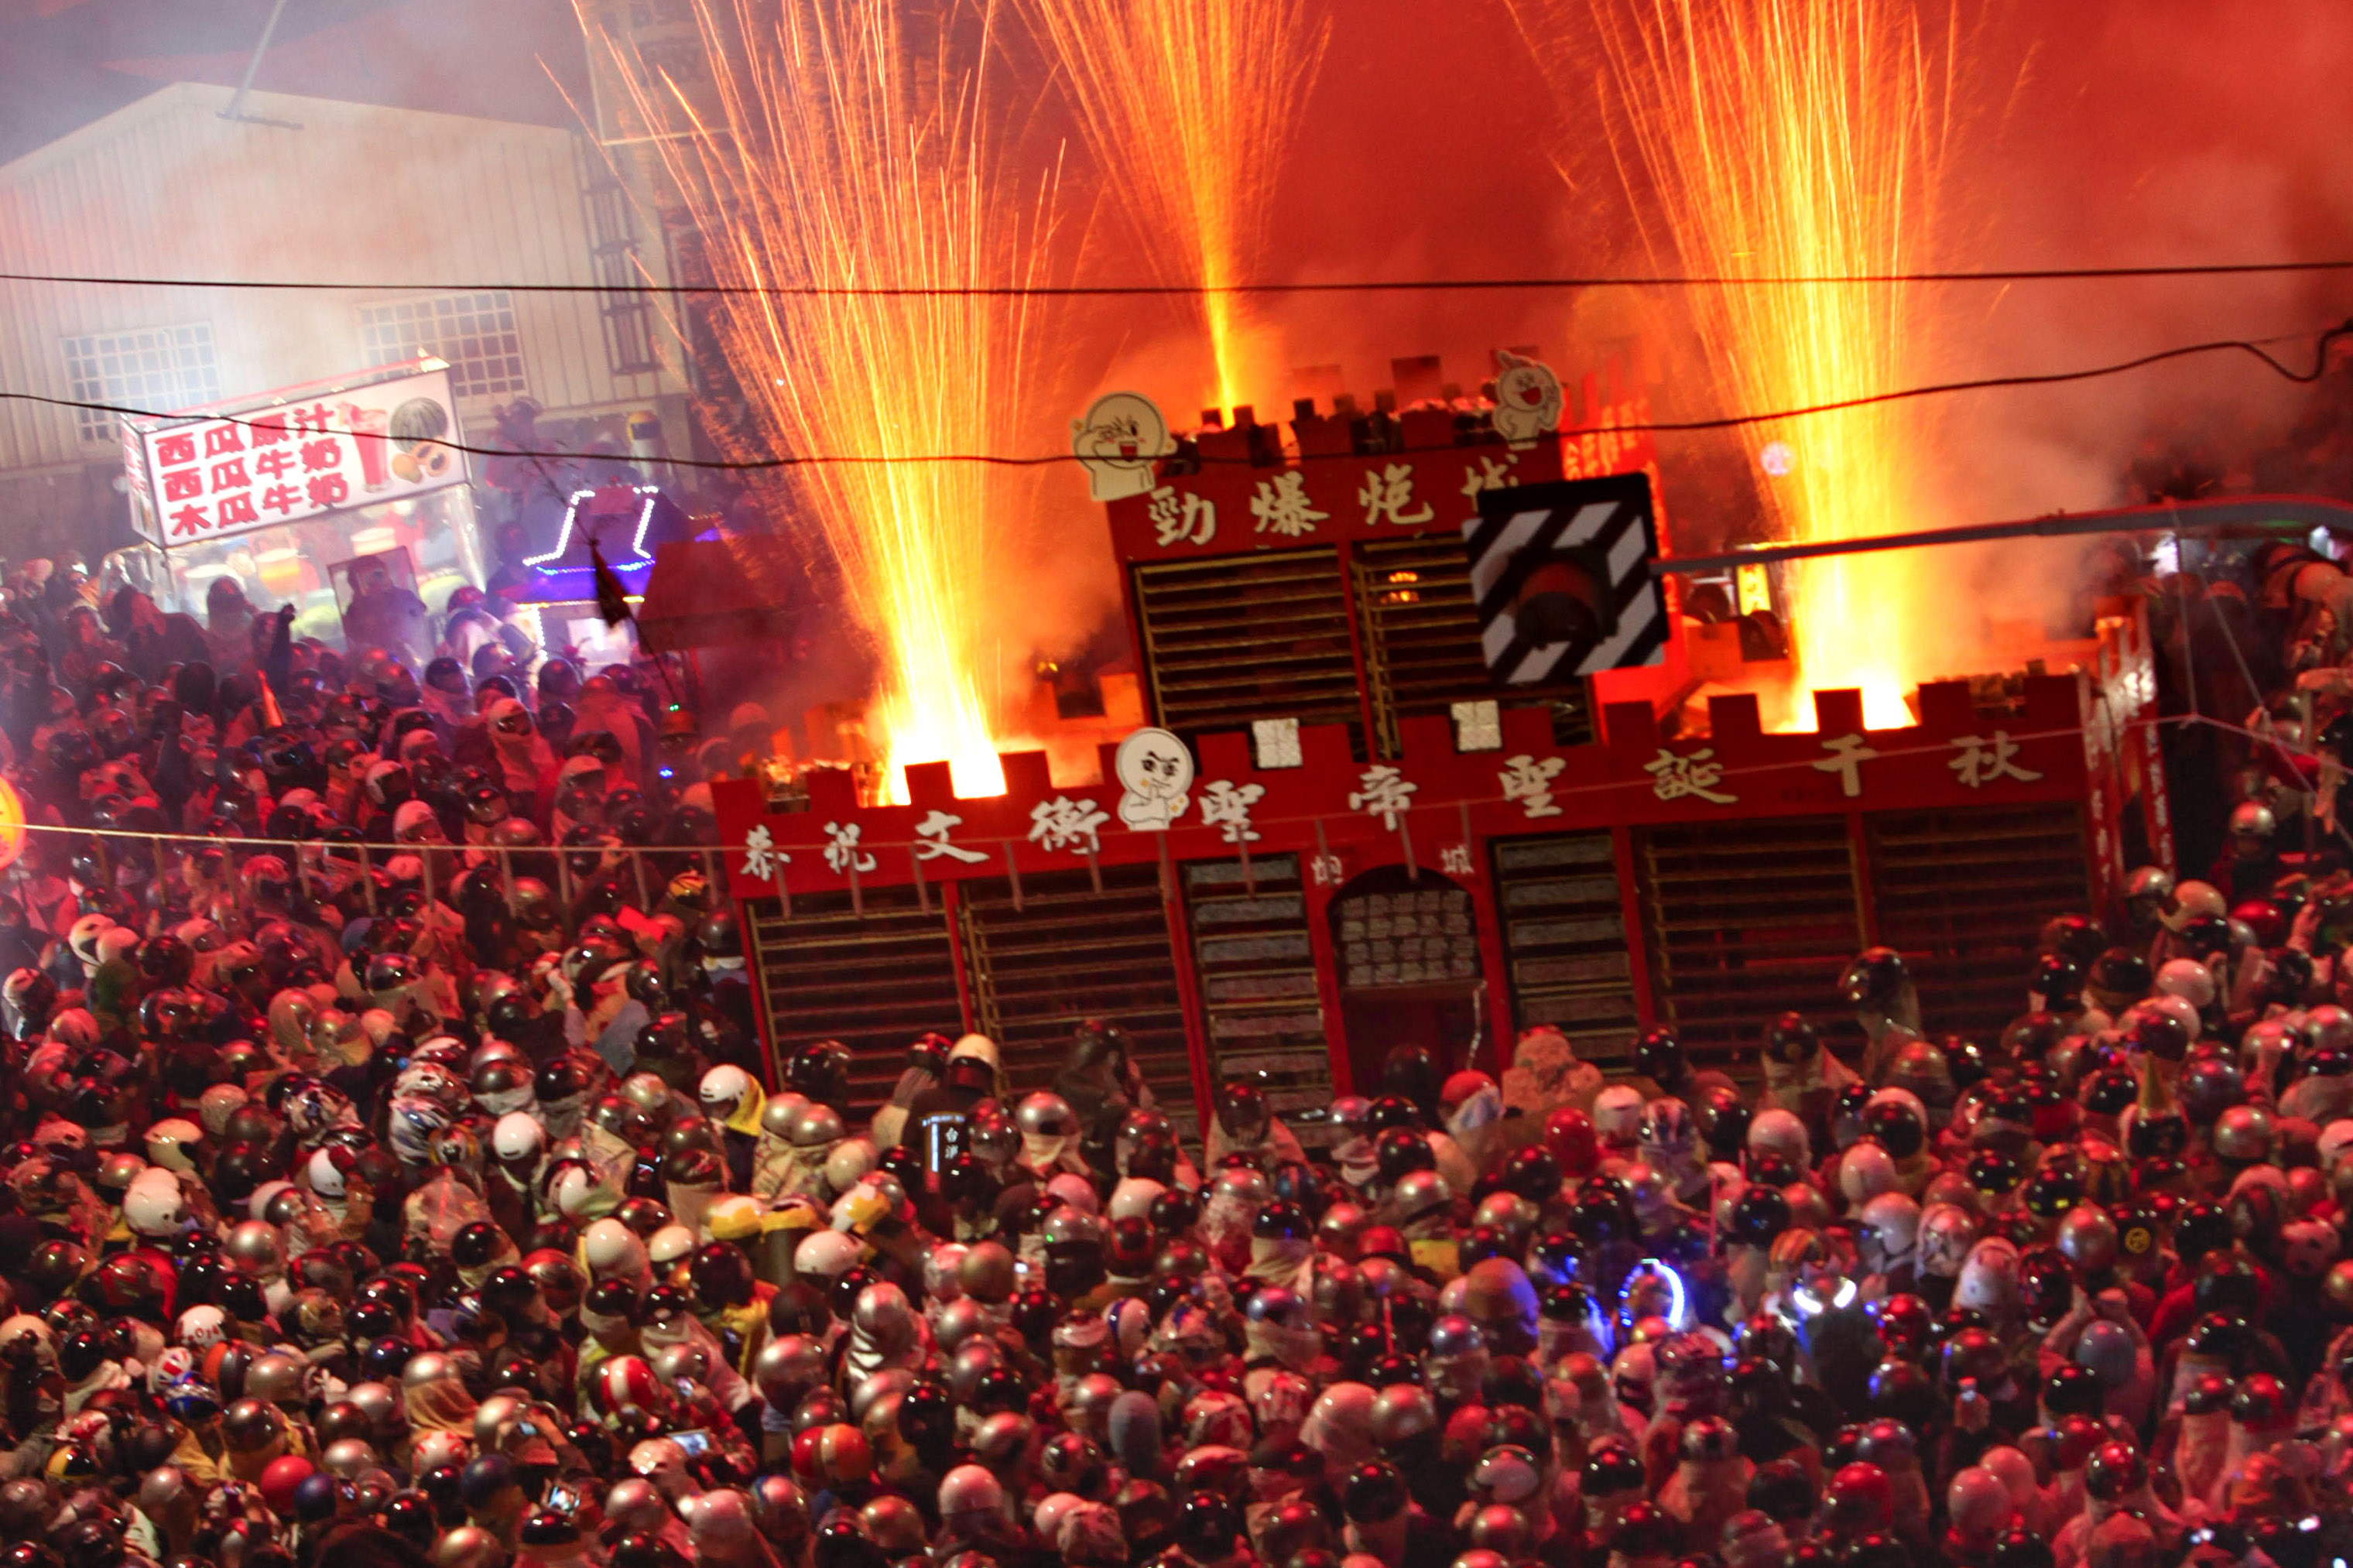 Visit Tainan in February, and watch the sky light up at the Yanshui Beehive Fireworks Festival.